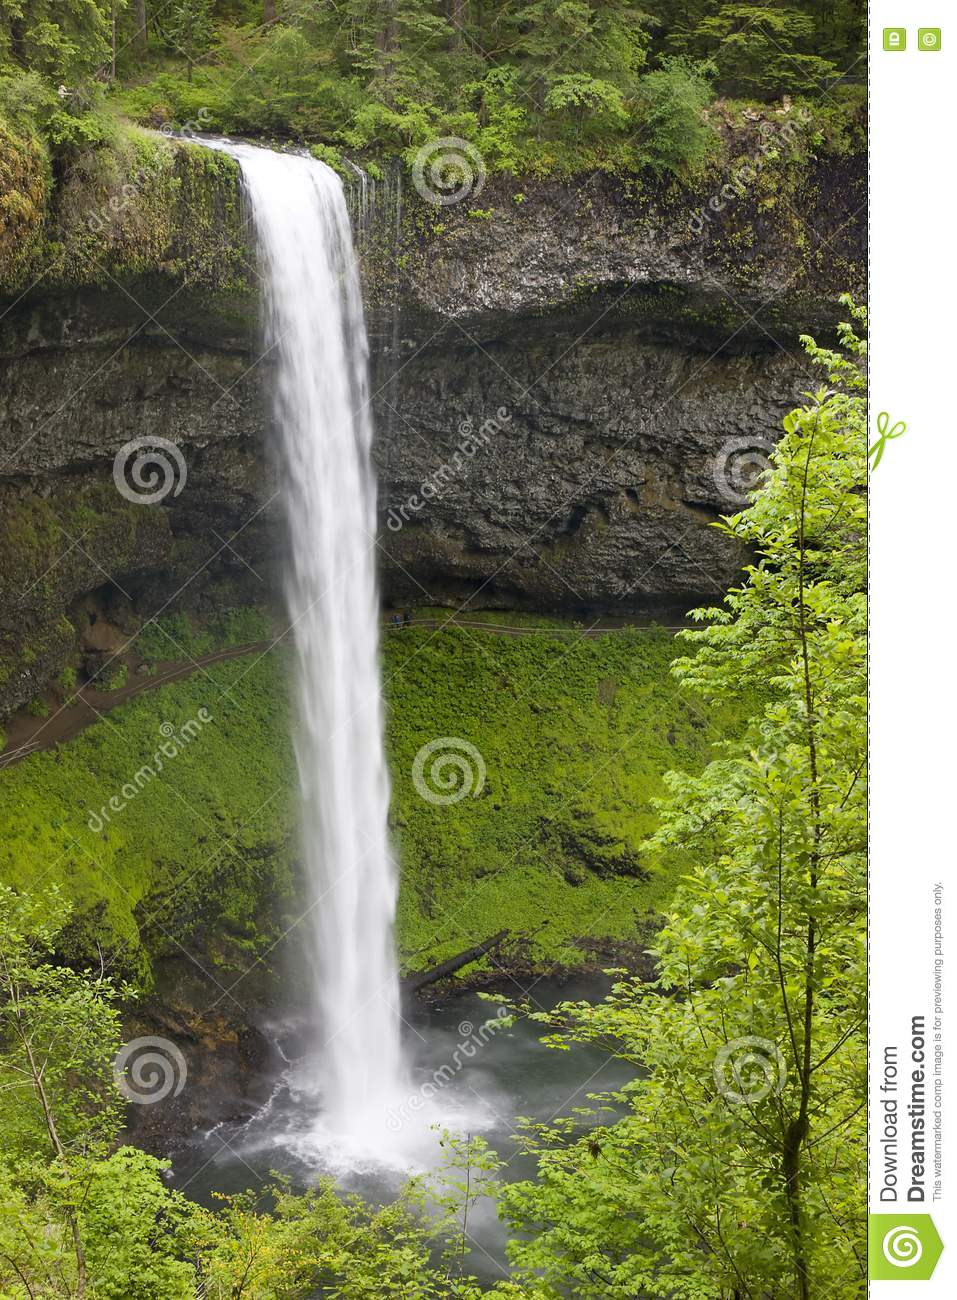 Swot Castorama Free Stock Images Waterfall In Oregon Picture Image 5530159